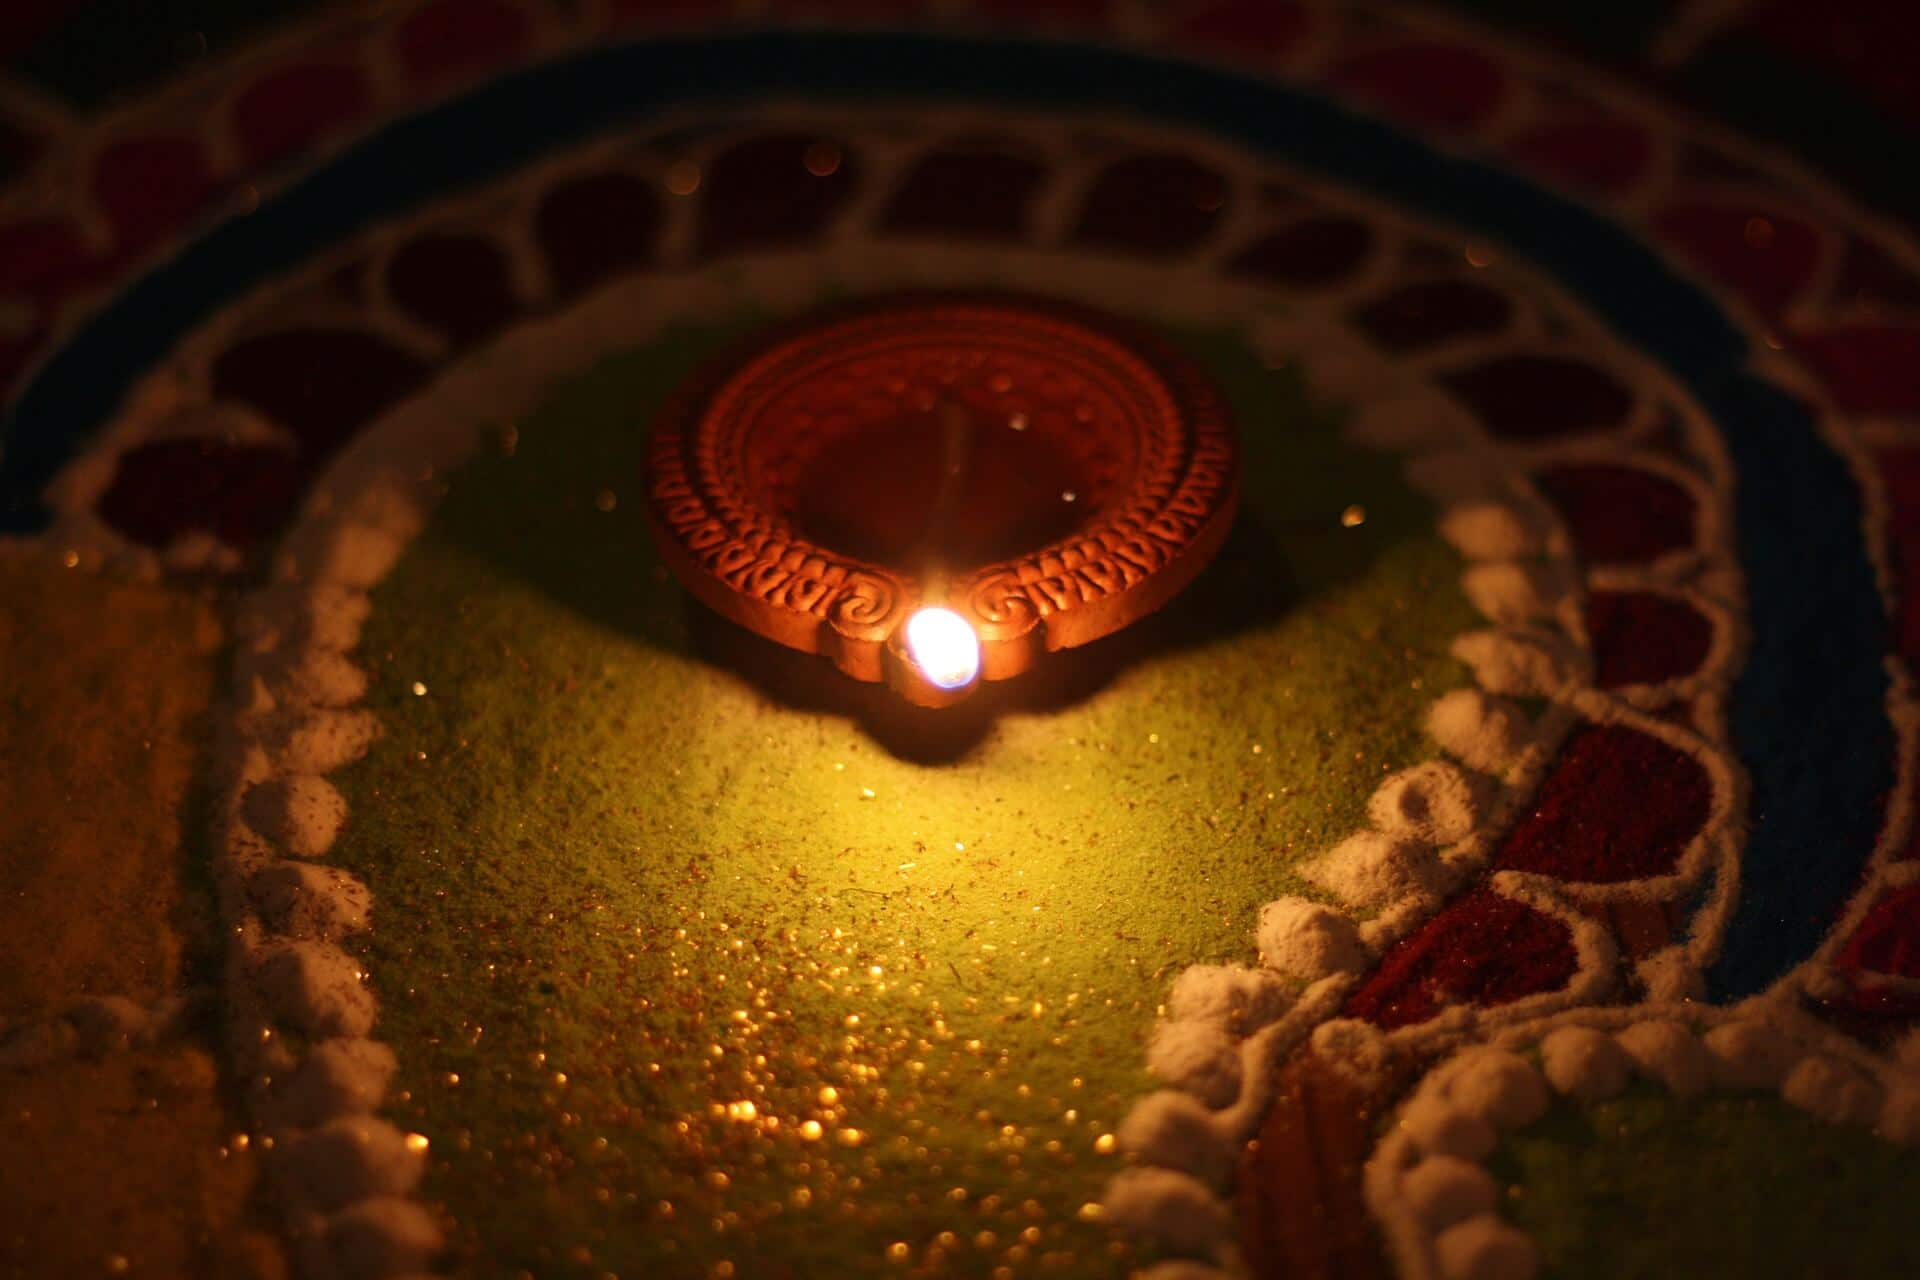 China Diwali Light Diwali Traditions Food Nostalgia And Everything In Between